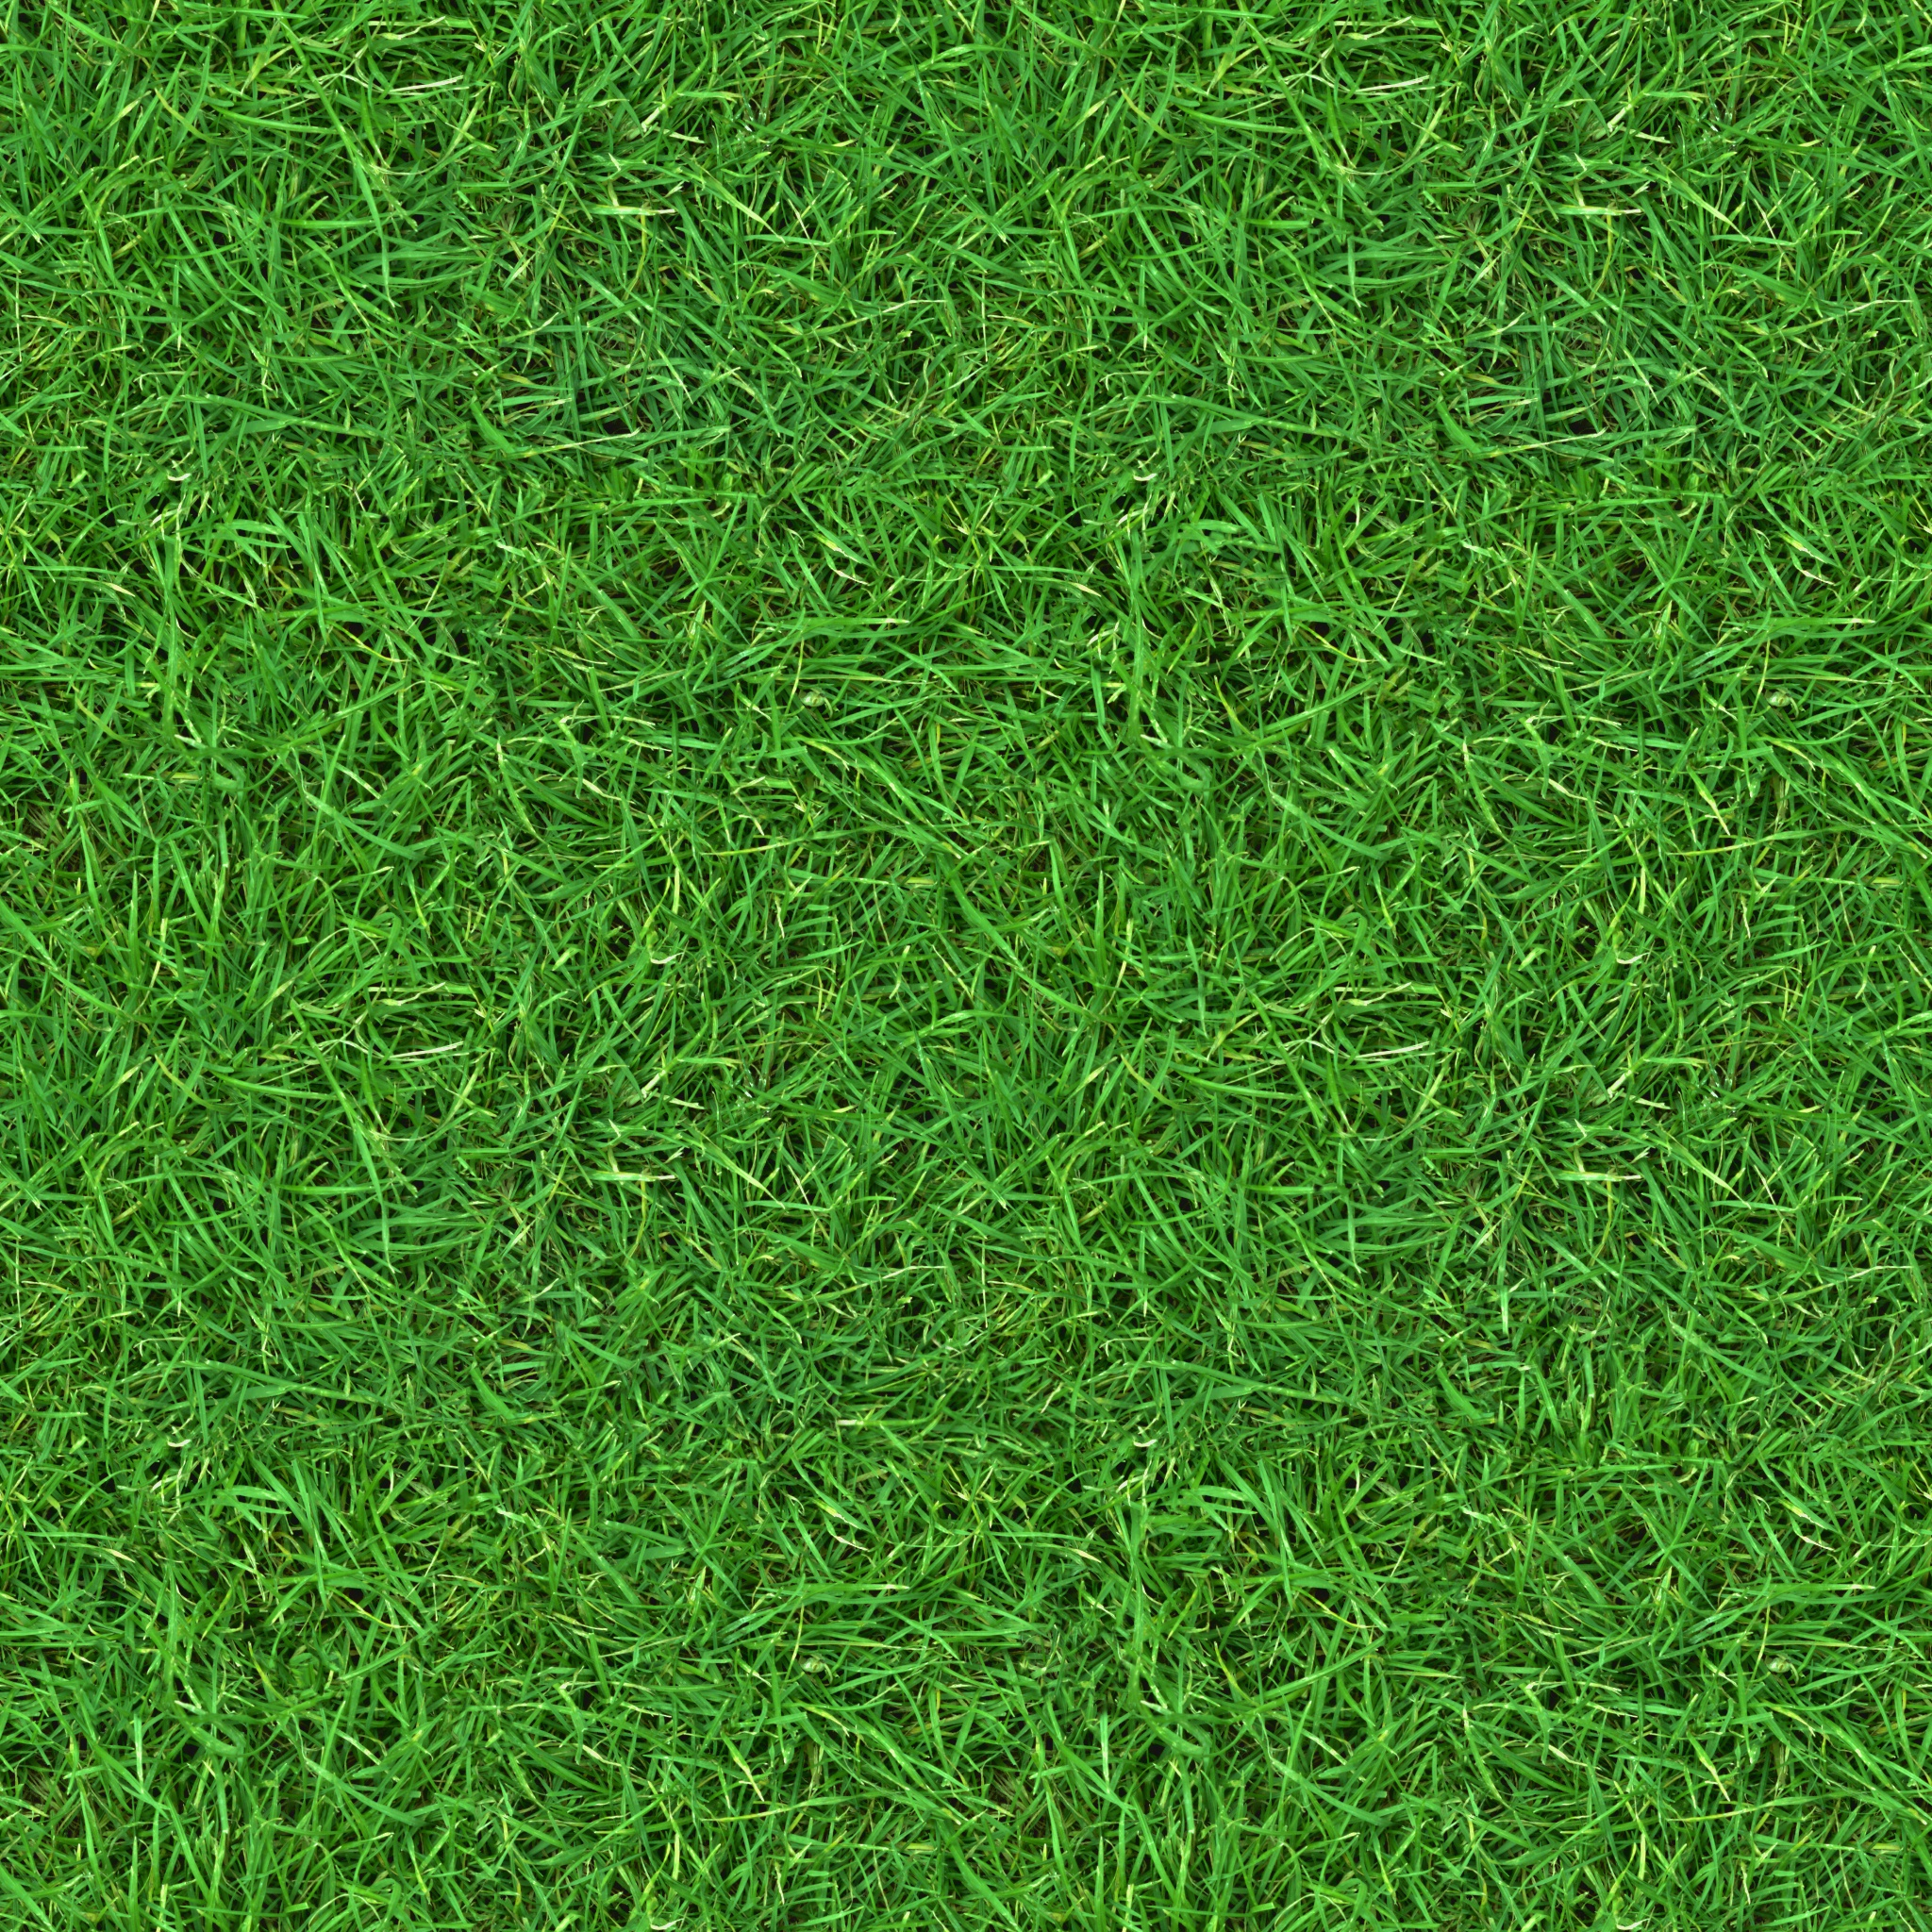 3D Textures Grass Collection Free Download (page 1